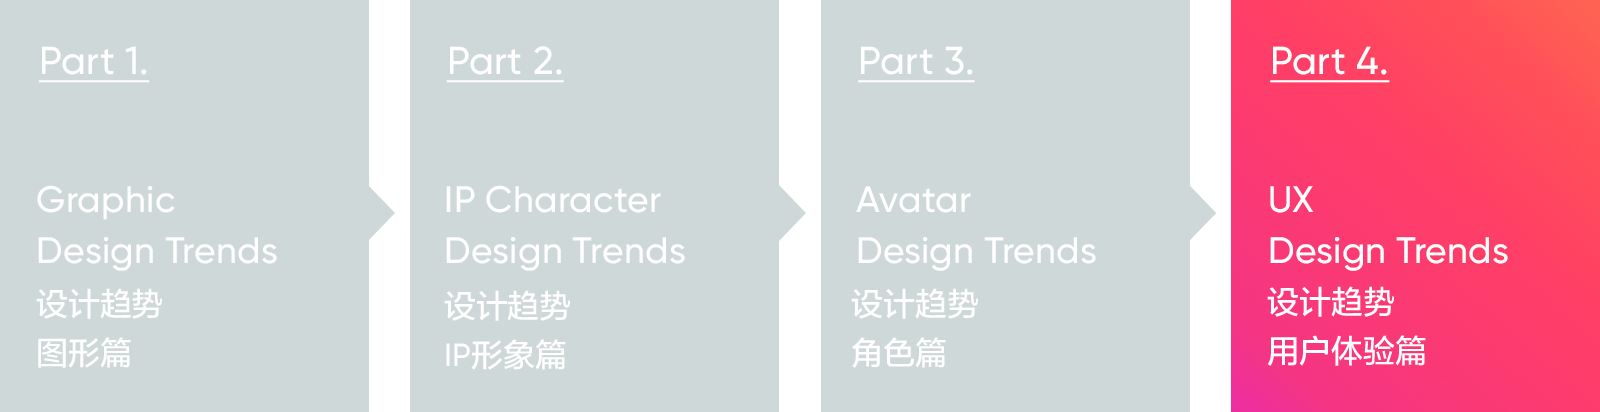 Product Trends 2020.2019 2020 Design Trend Ux Noteworthy The Journal Blog